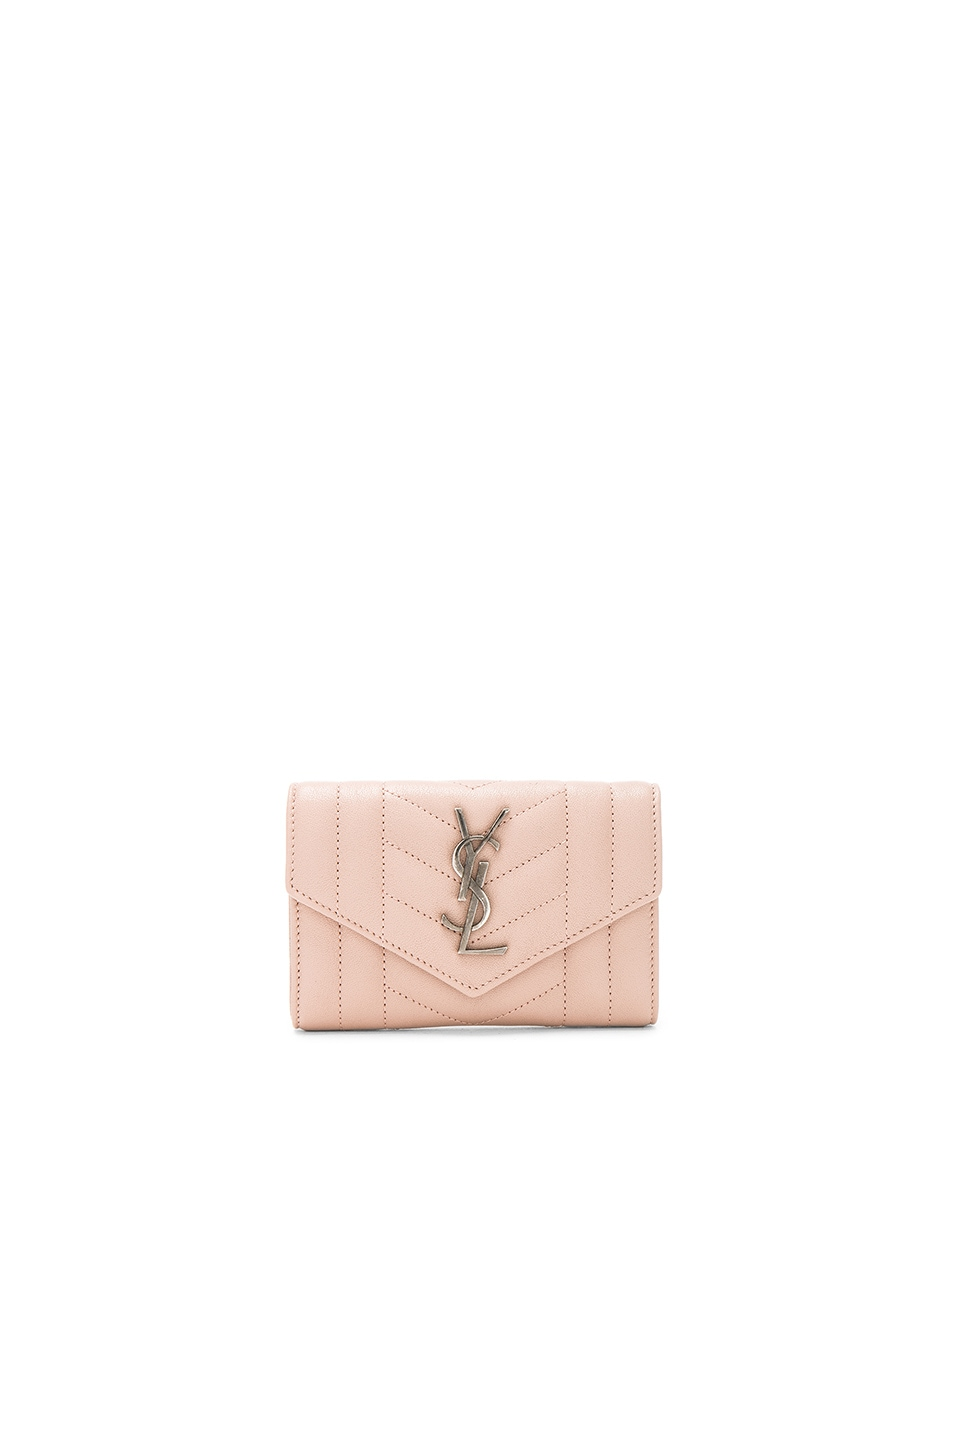 Image 1 of Saint Laurent Small Monogramme Envelope Wallet in Nude Pink